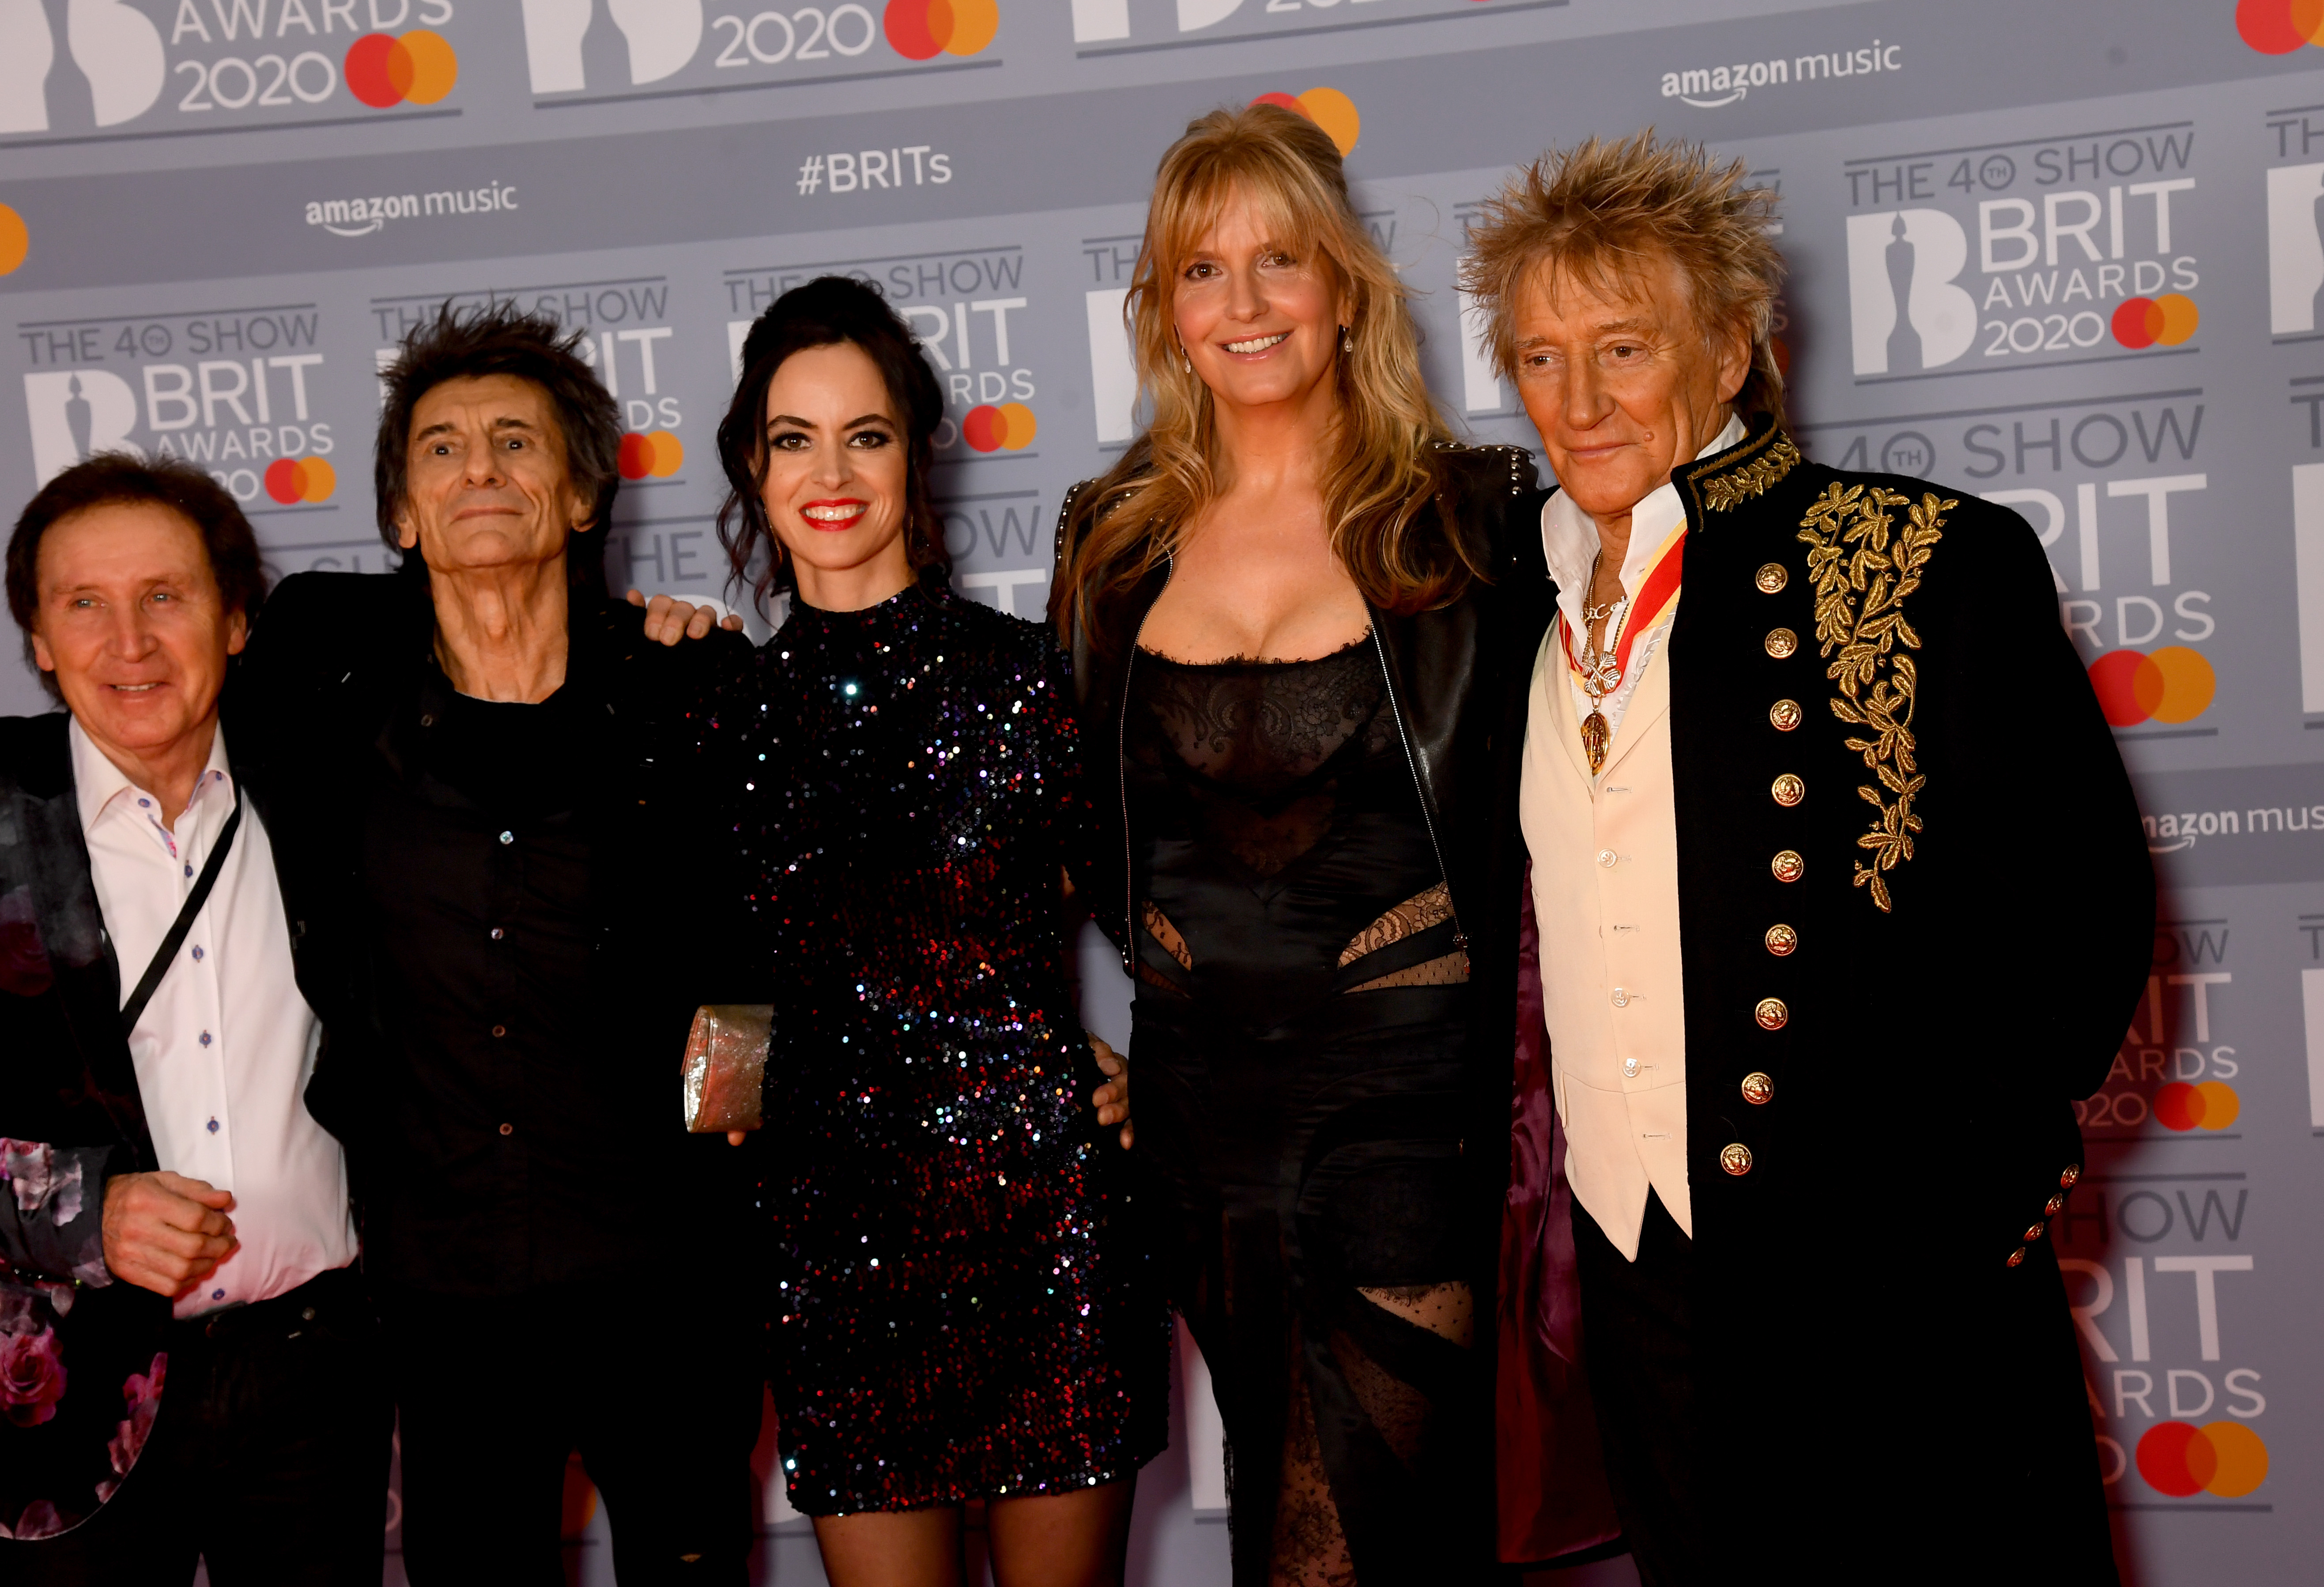 Kenny Jones, Ronnie Wood, Sally Wood, Penny Lancaster and Rod Stewart attend The BRIT Awards 2020 at The O2 Arena on February 18, 2020 in London, England. (Photo by Dave J Hogan/Getty Images)